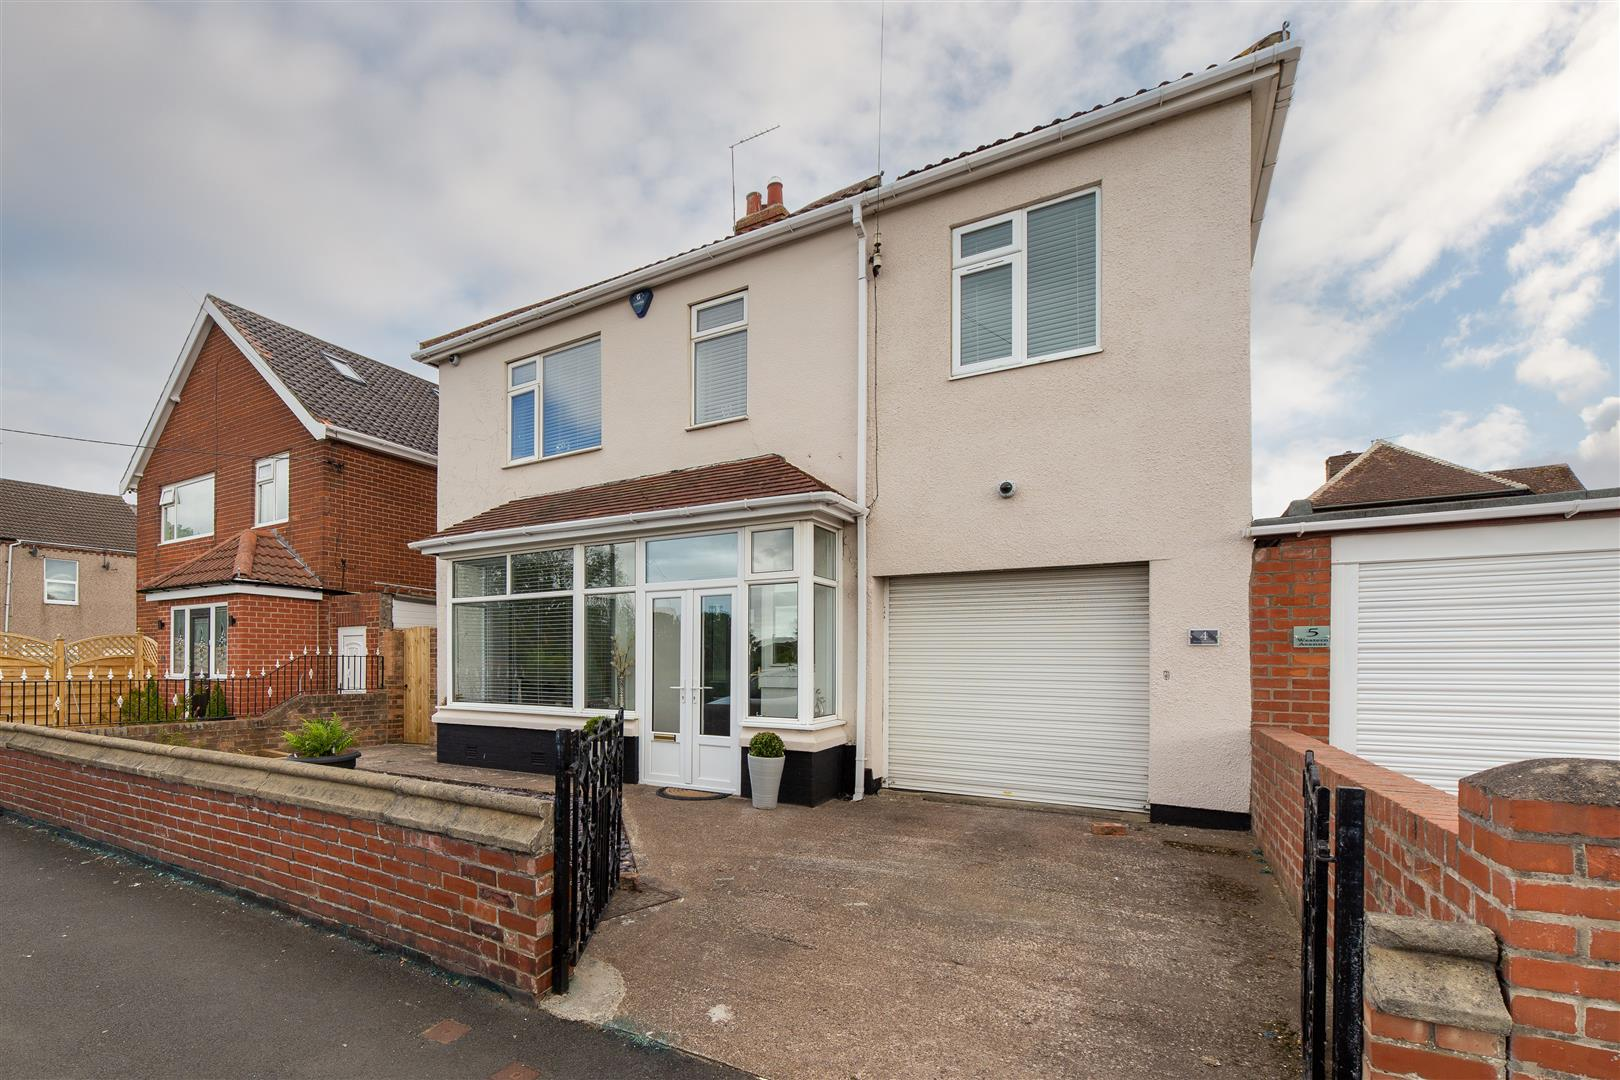 4 bed detached house for sale in Western Avenue, Whitley Bay, NE25